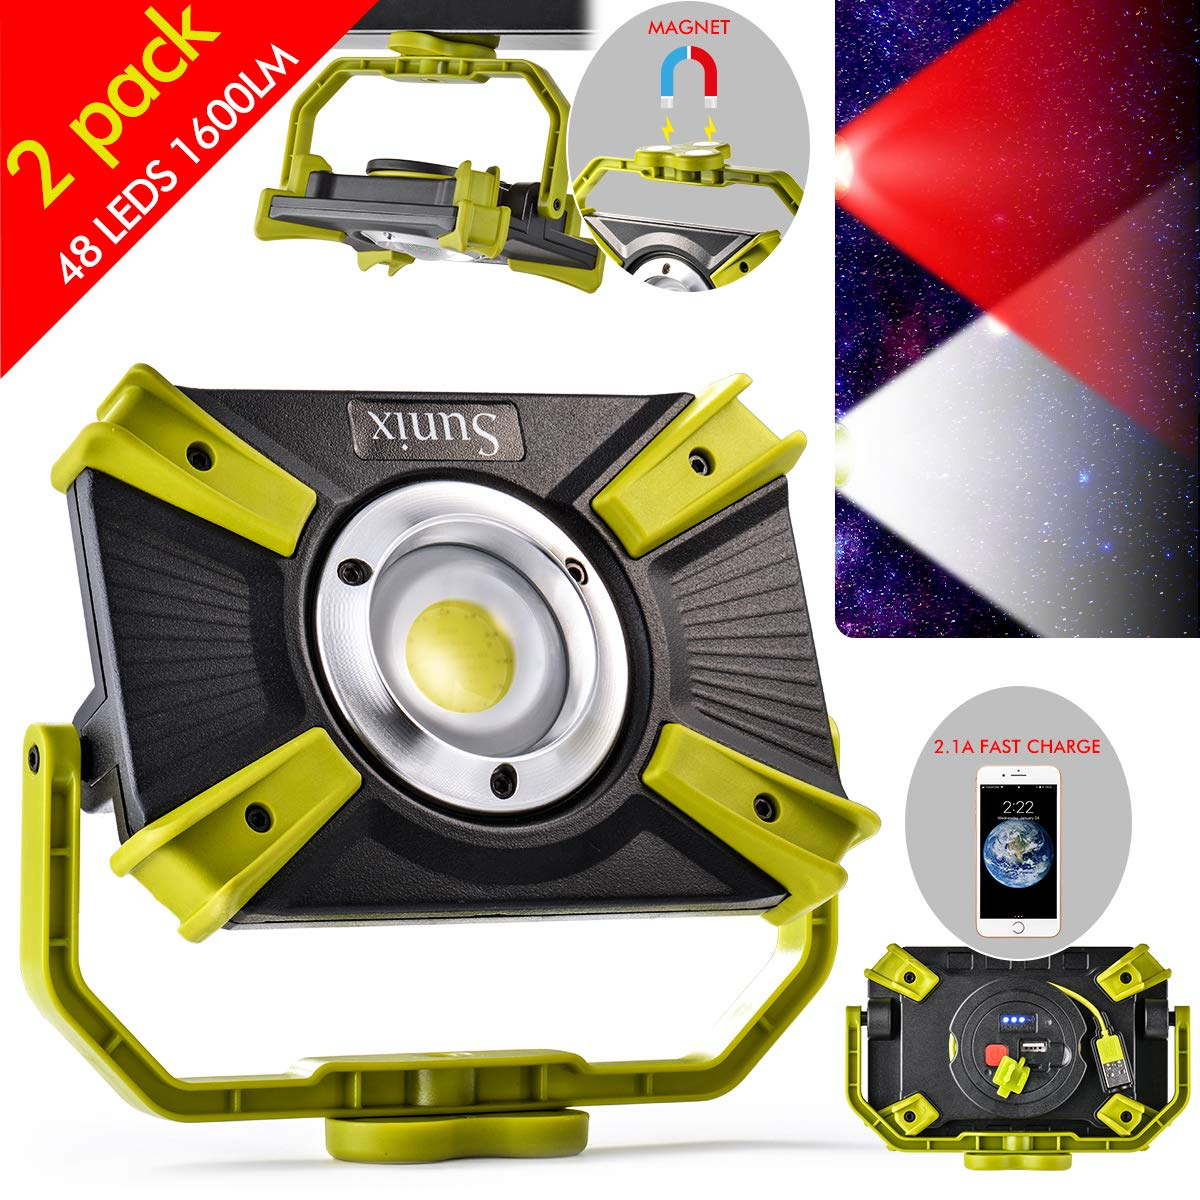 LED Work Light Magnetic Base Rechargeable 20W 1600LM SOS Mode 2.1A Fast Charging Waterproof Spotlights Outdoor Camping Emergency Floodlights For Truck Workshop Construction Site 2 Packs by XCSOURCE